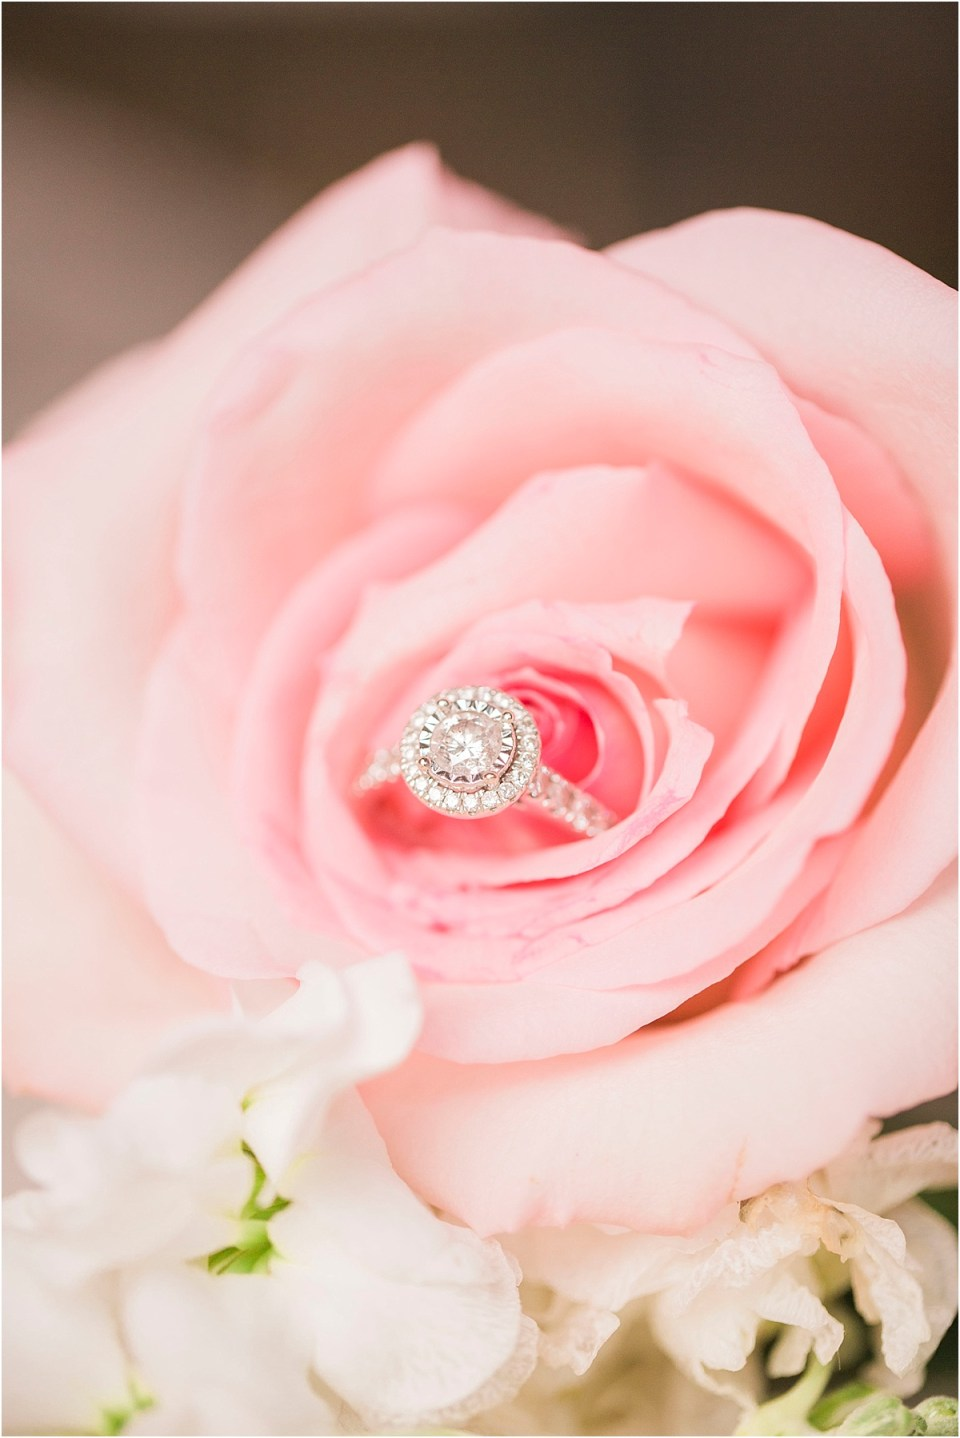 Engagement ring in a rose, North Carolina Wedding at Morehead Inn.